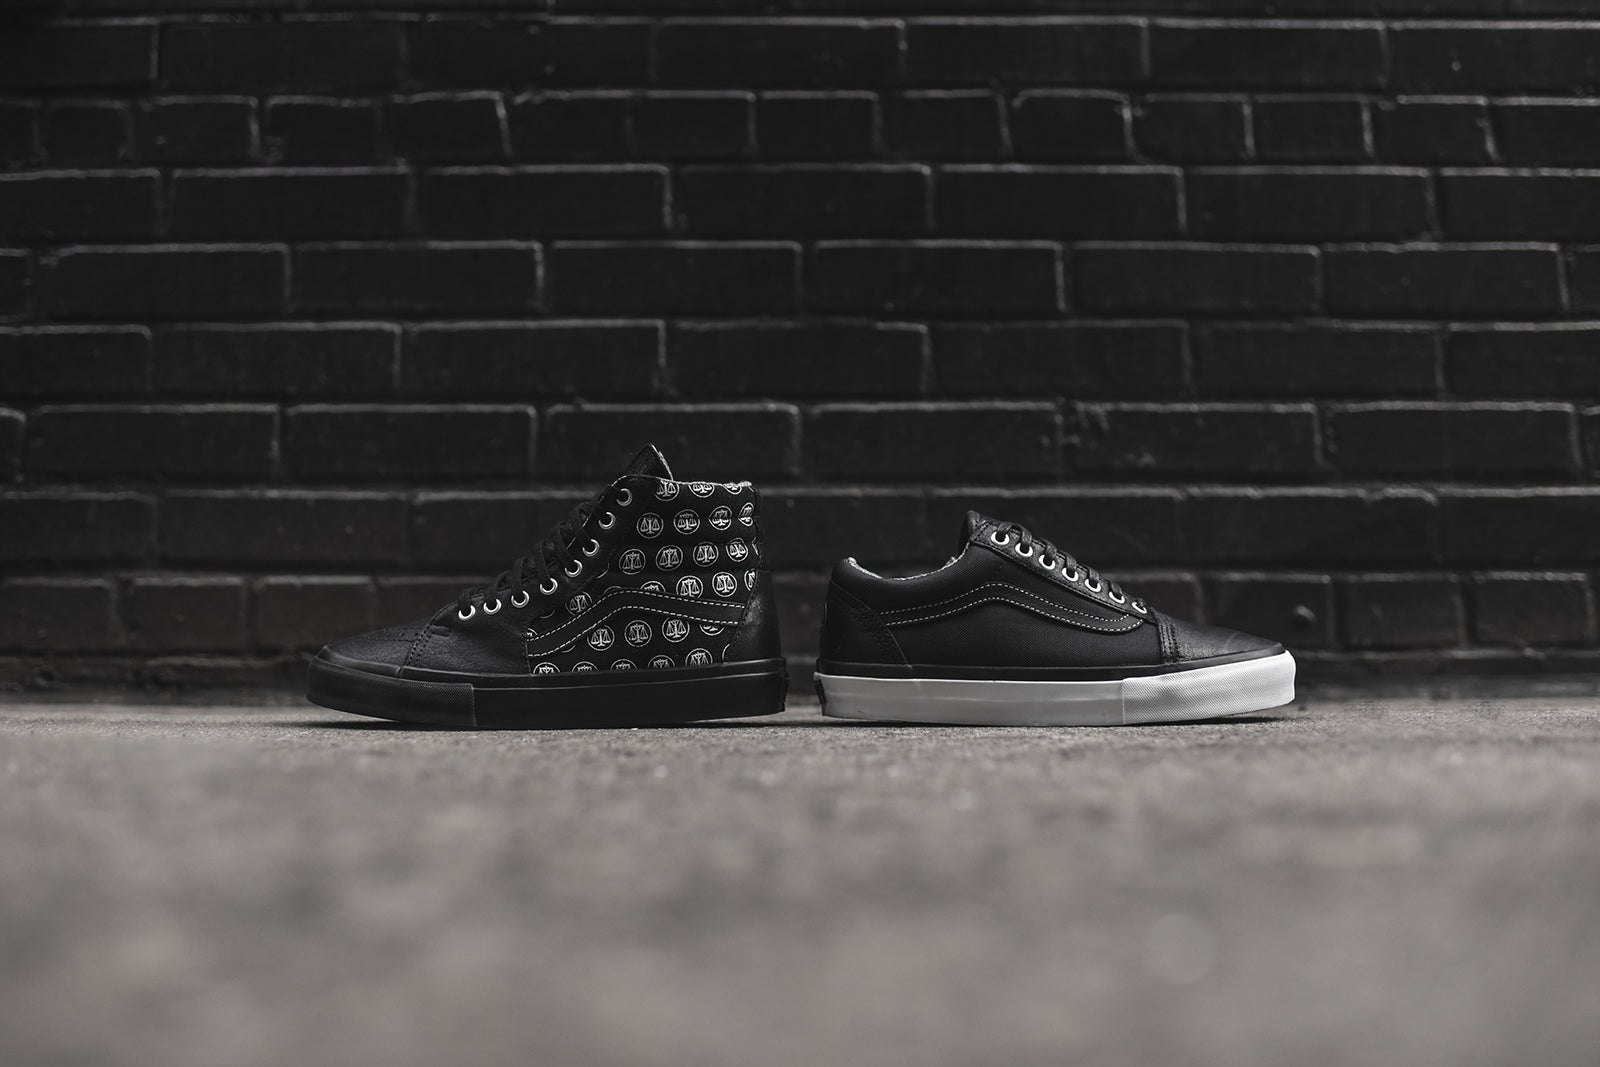 376f7e52850f Vans Vault x Highs And Lows Pack. September 17